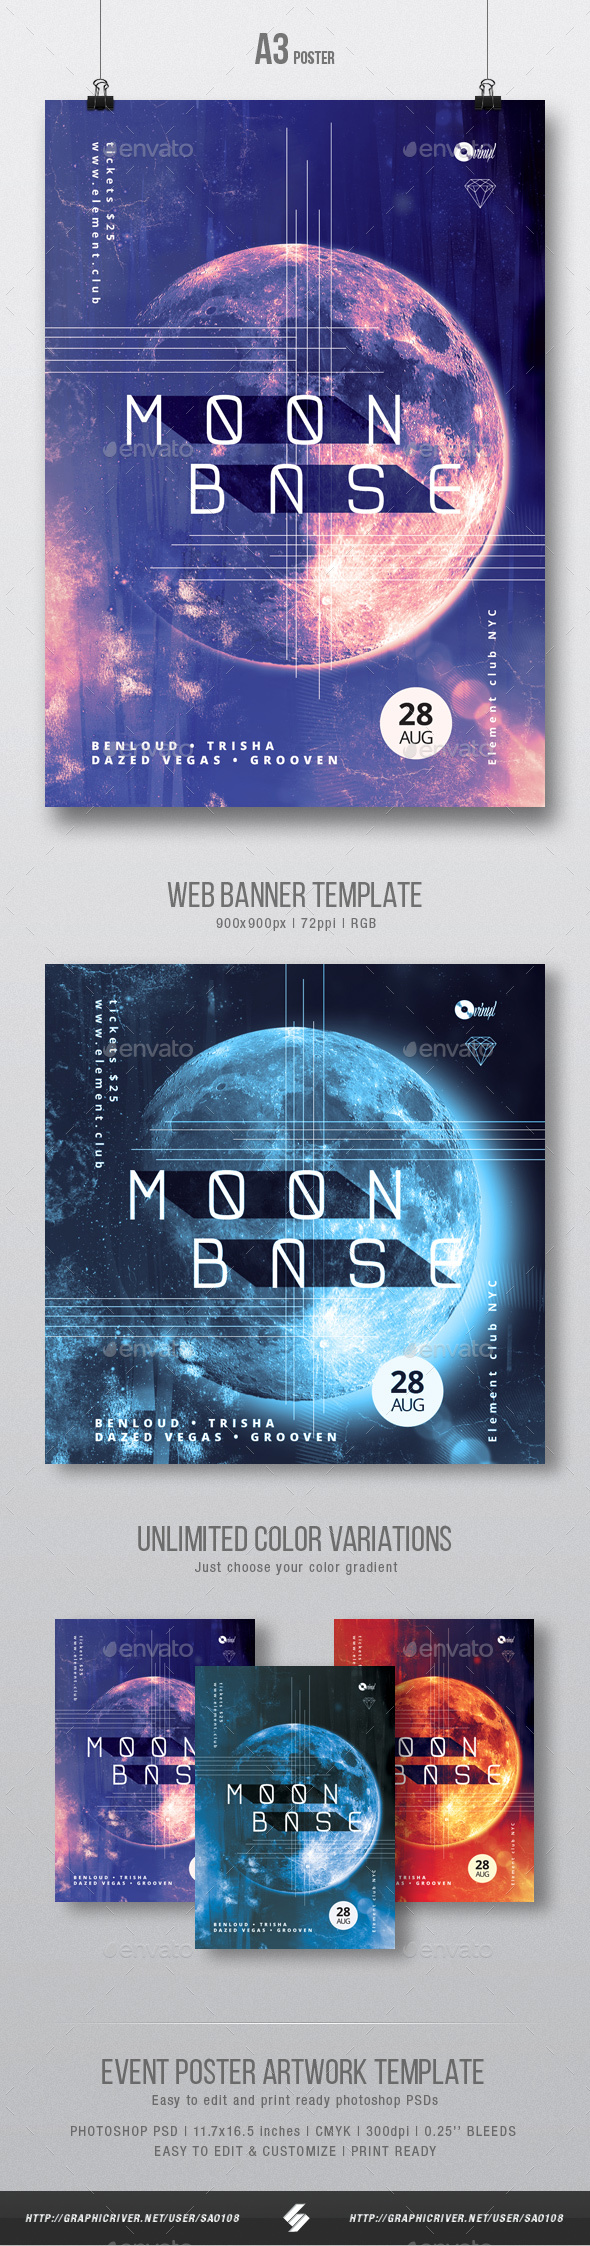 Moon Base - Progressive Party Flyer / Poster Artwork Template A3 - Clubs & Parties Events